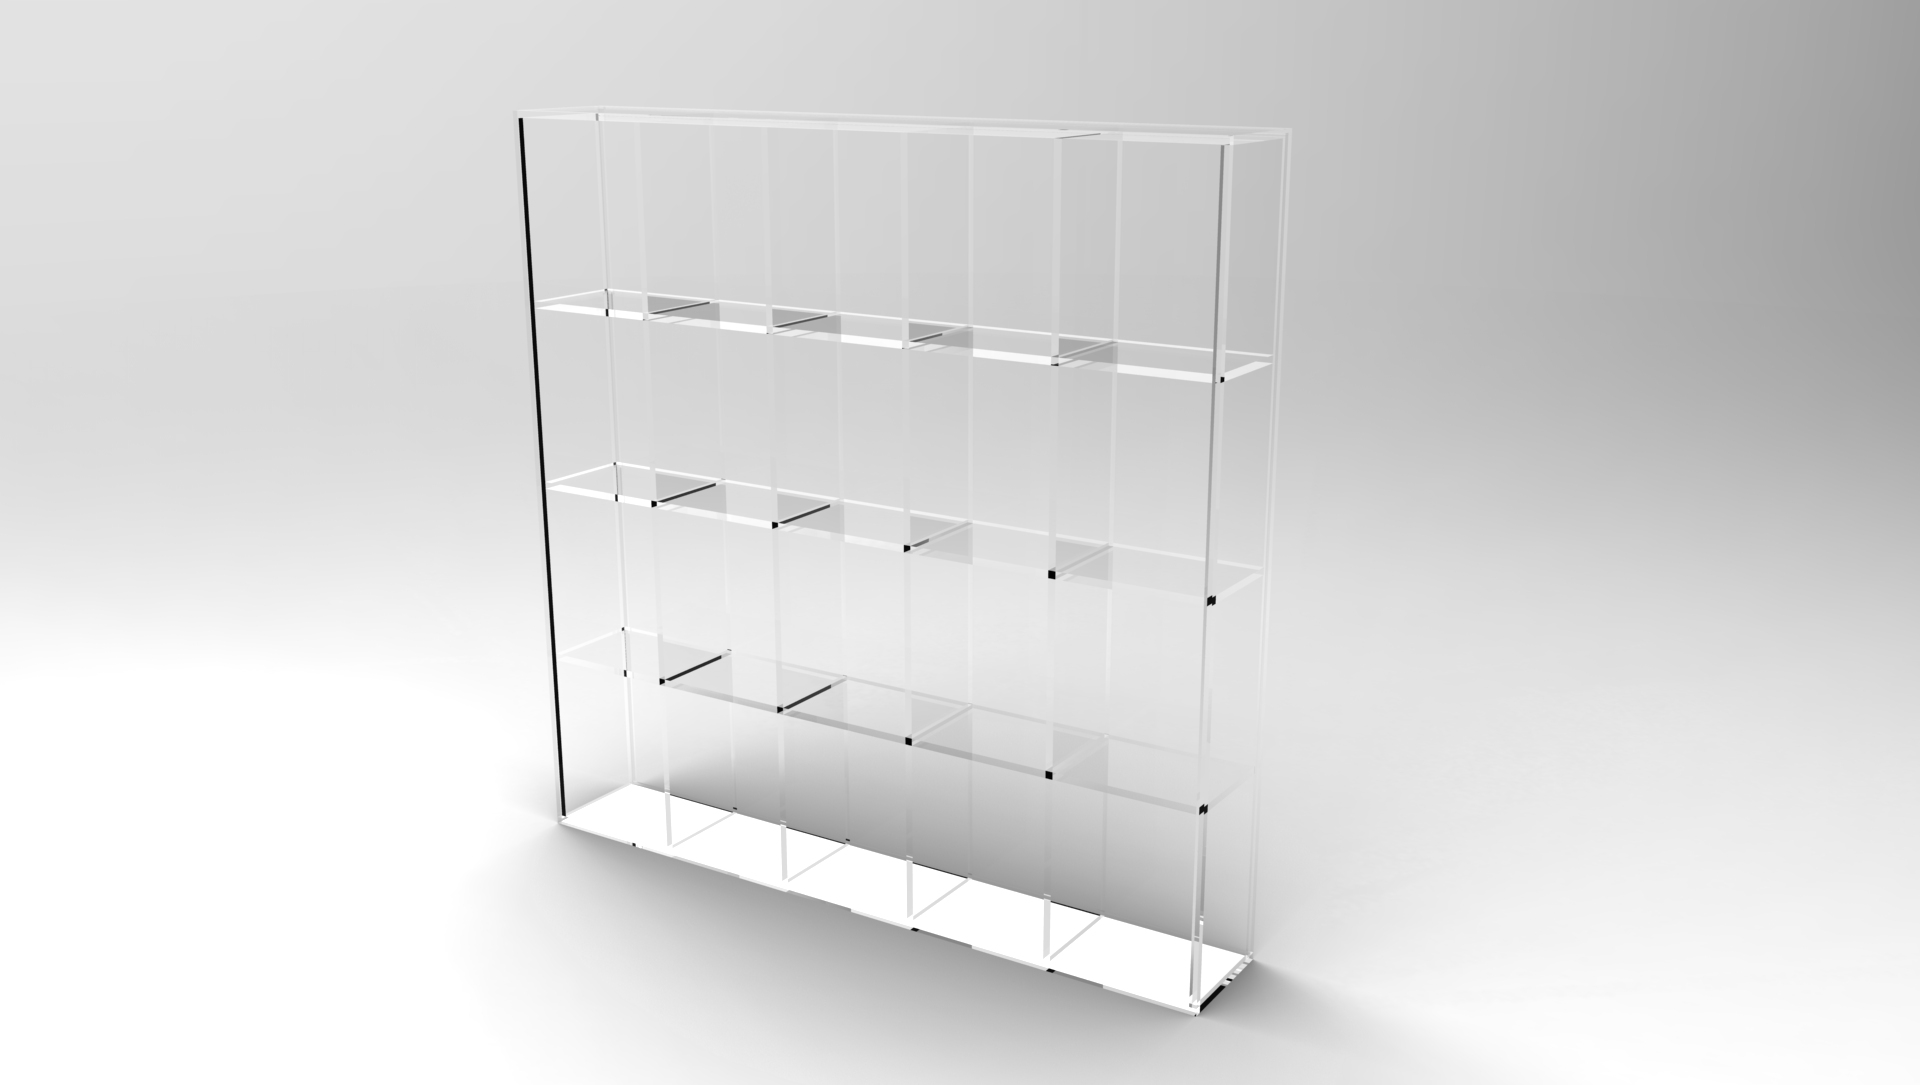 glass shelf home overstock product and classy metal bookcase free acrylic garden high today inches benzara studio tier shipping wide